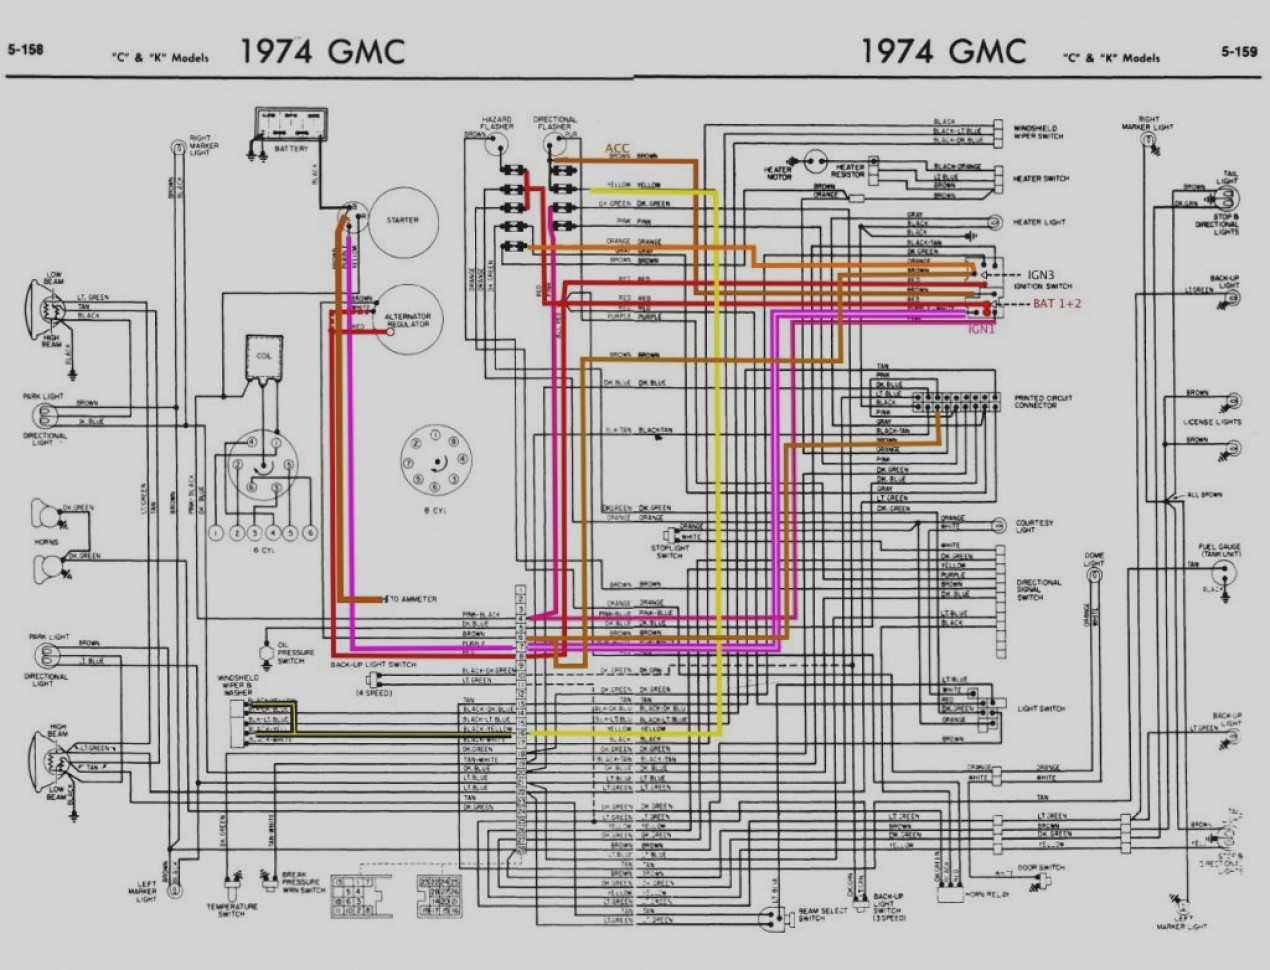 light switch wiring diagram on 71 chevy pickup starter wiring rh casiaroc co 78 chevy c10 radio wiring diagram Chevy Ignition Switch Wiring Diagram